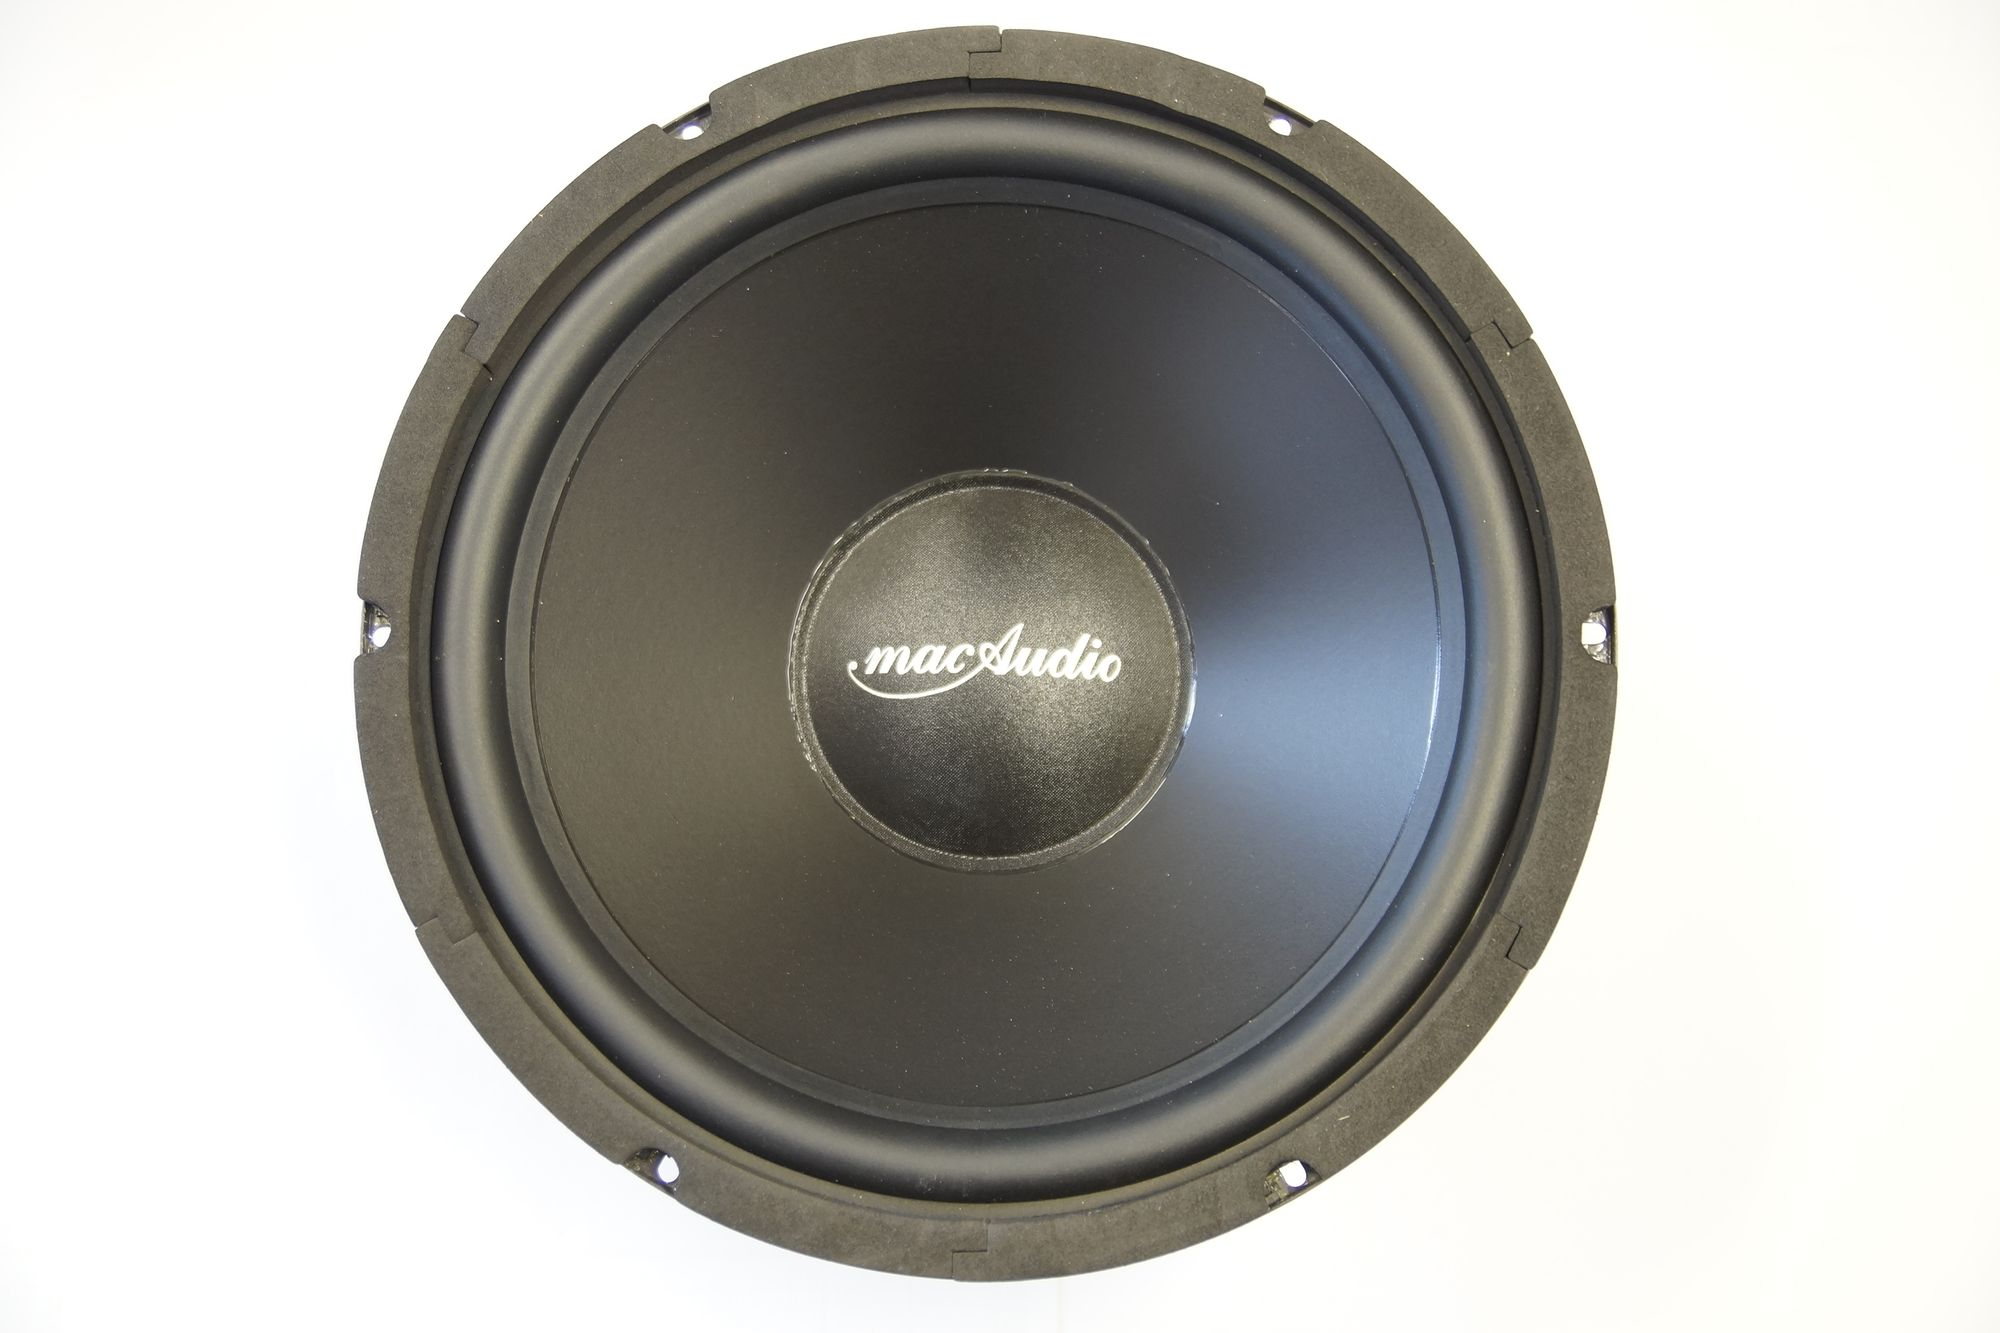 Mac Audio Subwoofer MAWS 300 CP 4140 R 650 Basslautsprecher Tieftöner